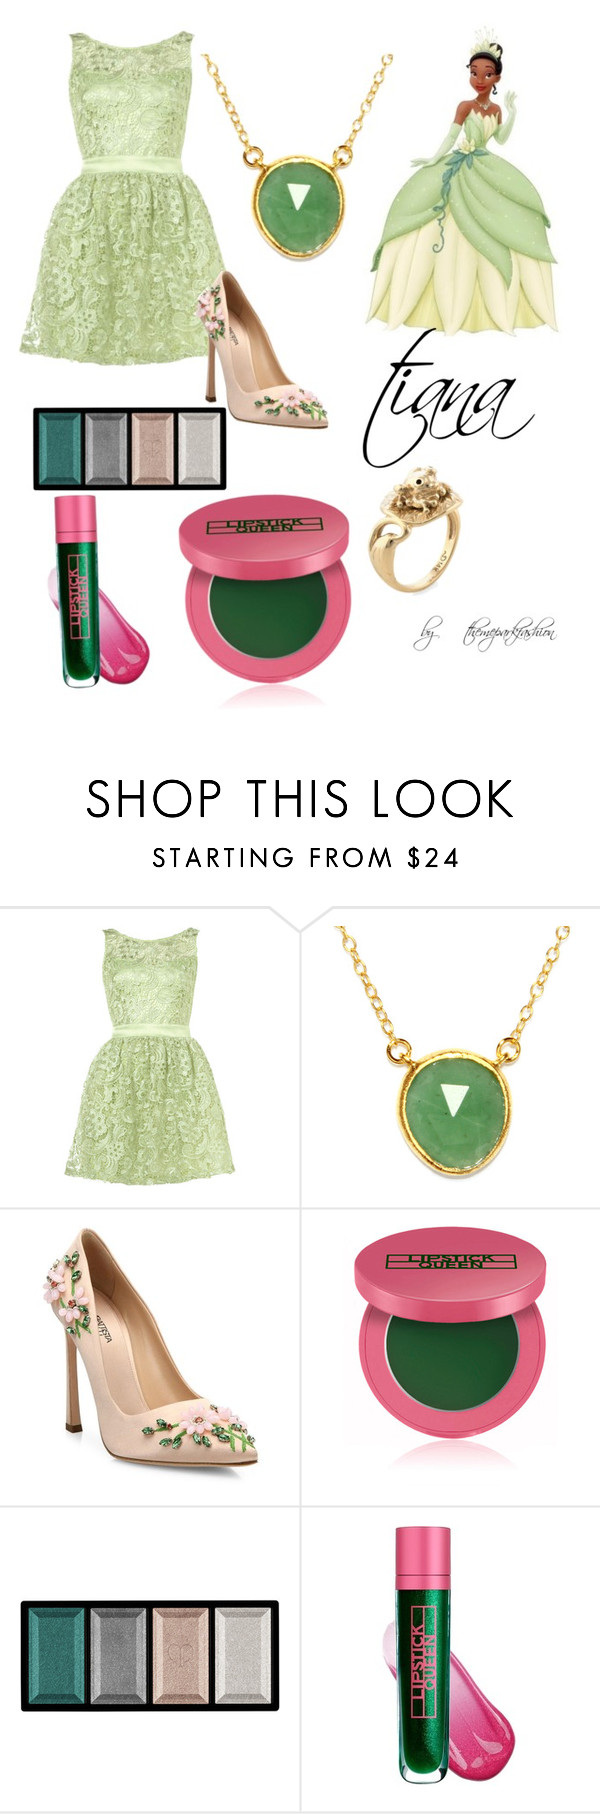 """tiana"" by themeparkfashion ❤ liked on Polyvore featuring Lipsy, BillyTheTree, Giambattista Valli, Lipstick Queen and Clé de Peau Beauté"